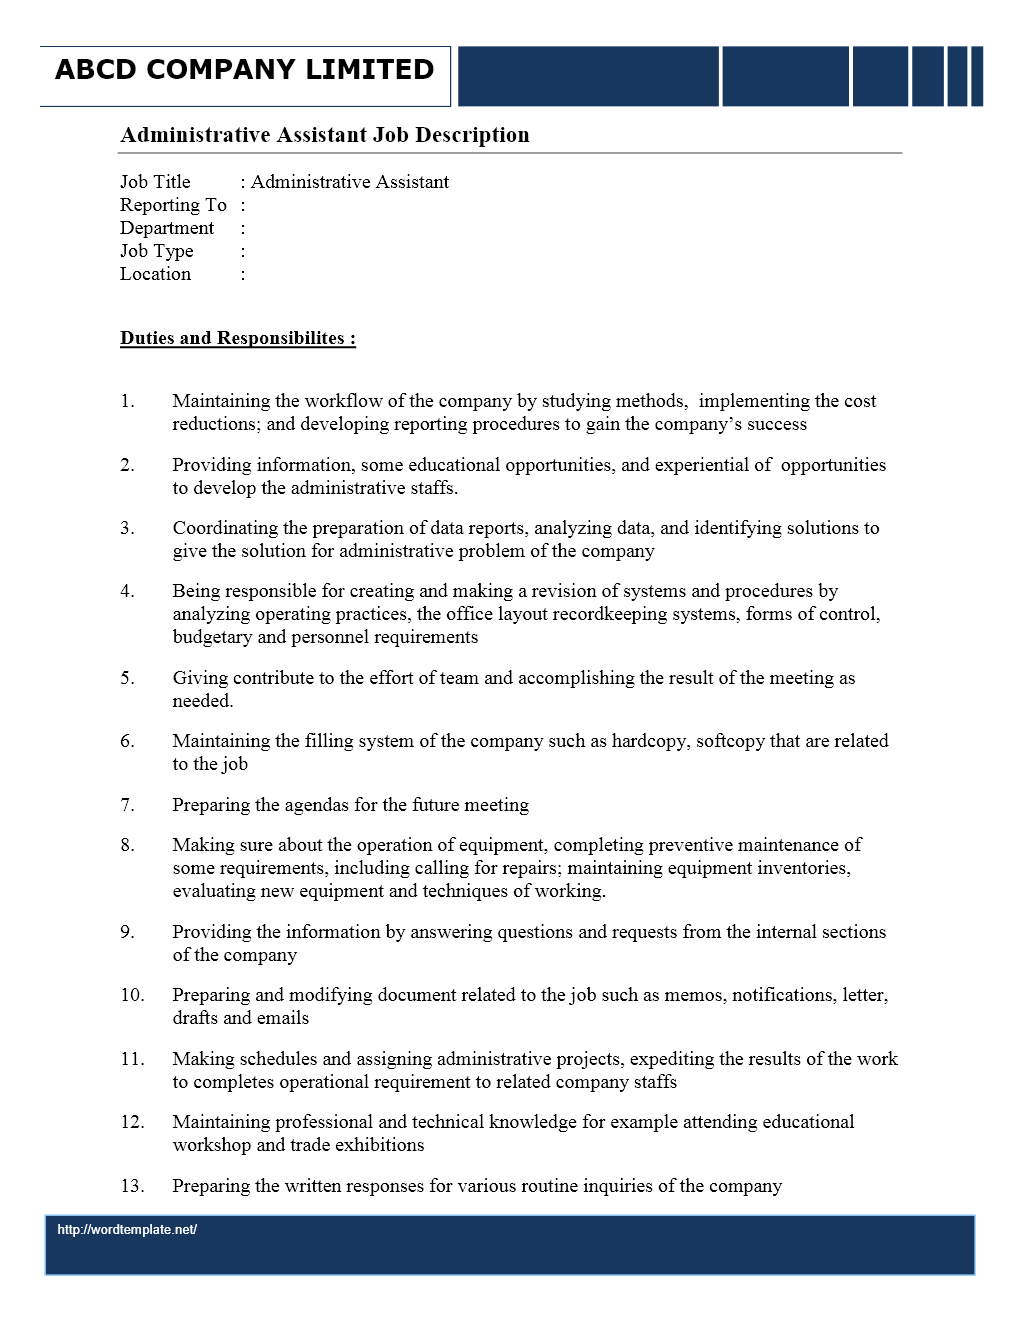 administrative assistant responsibilities resume